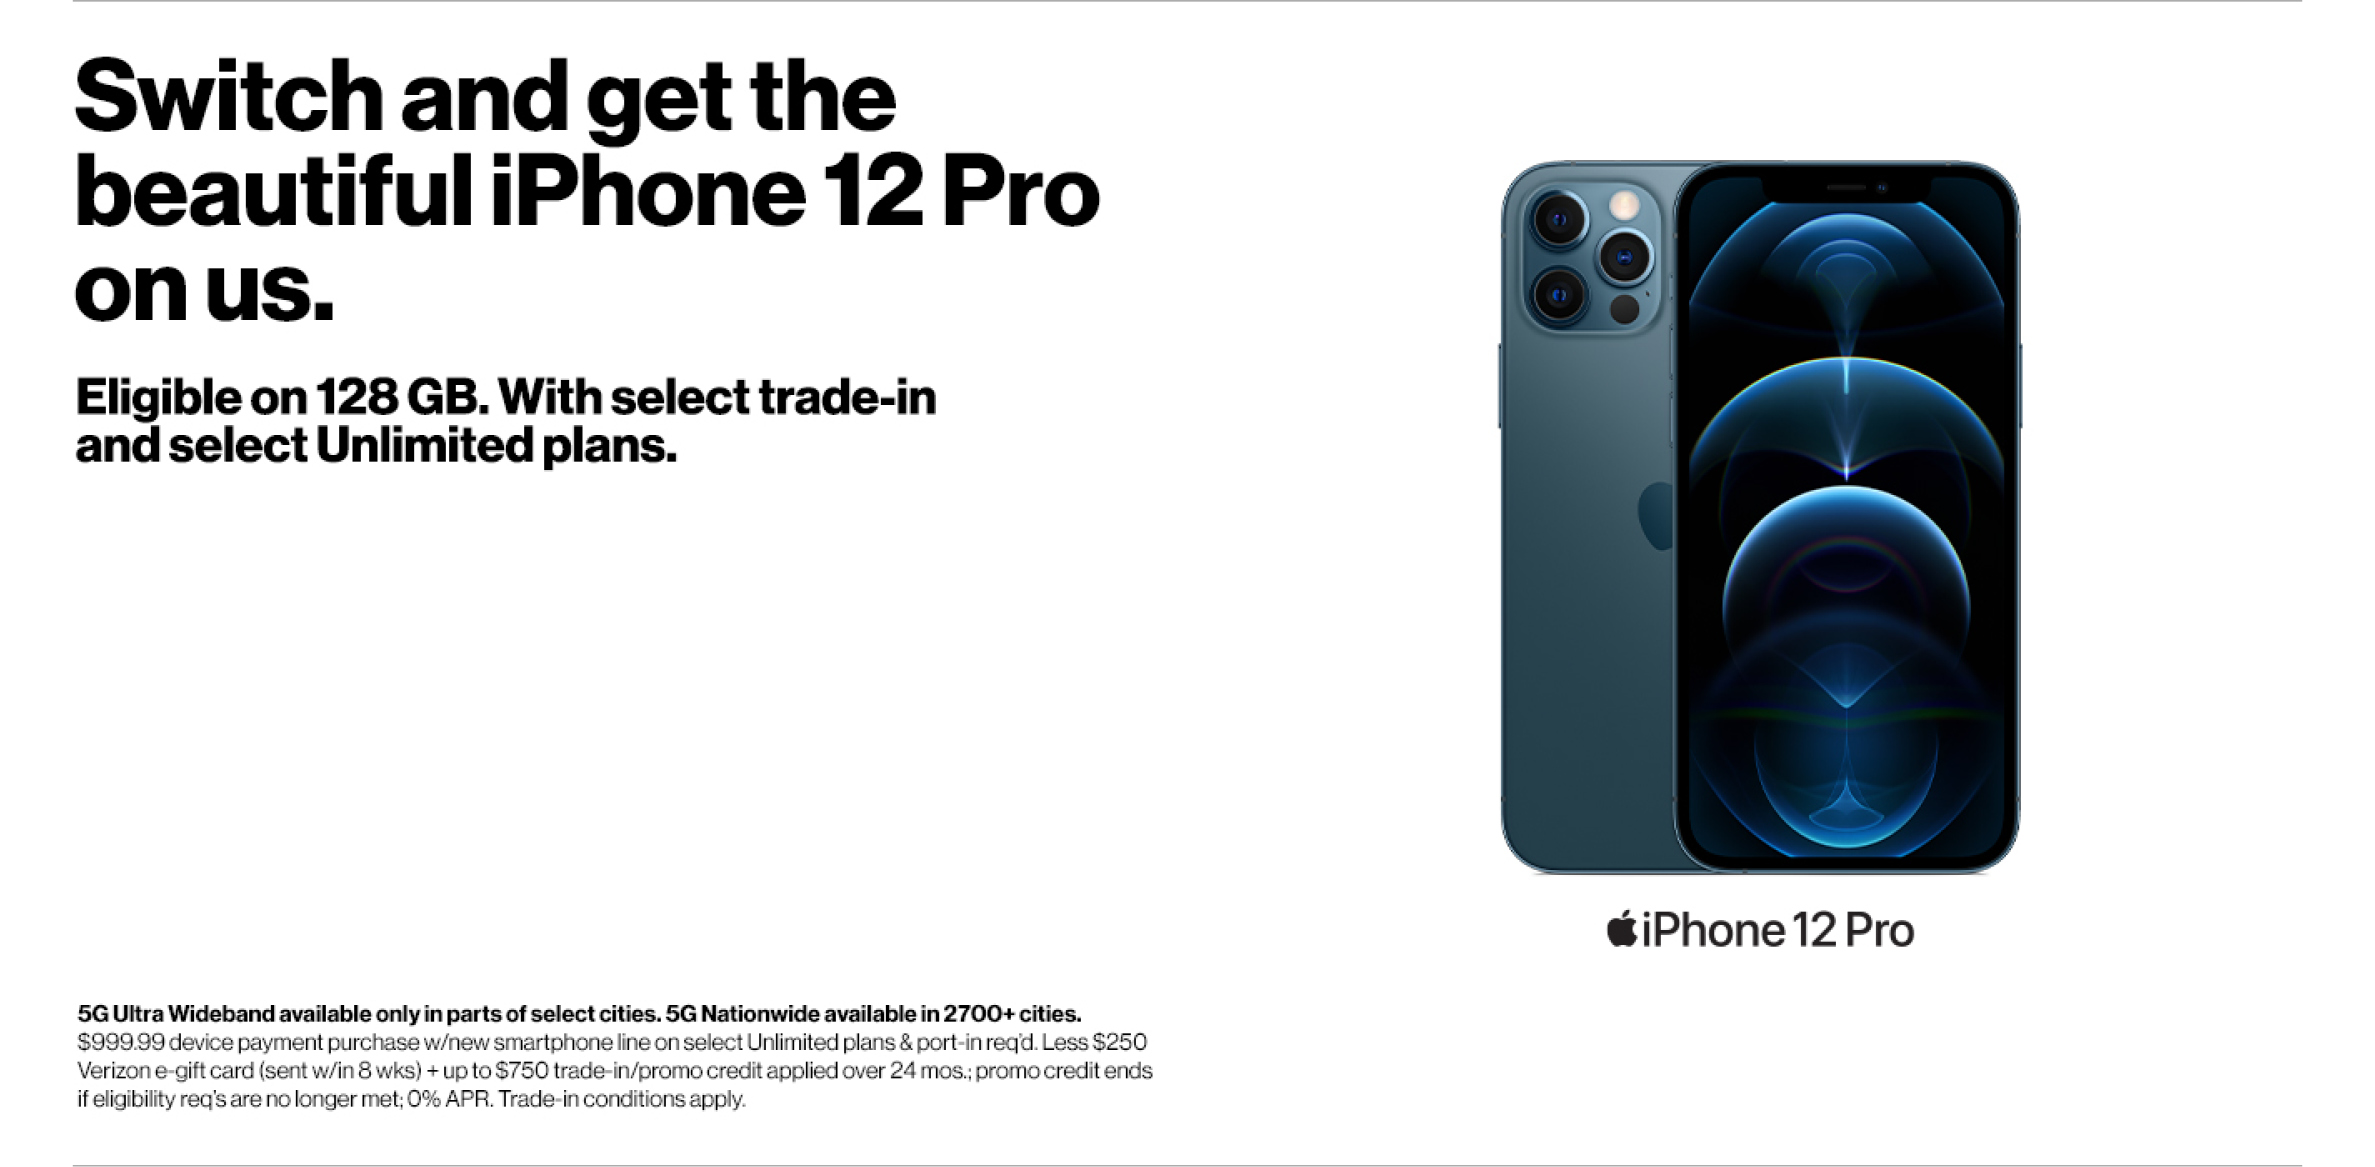 Get iPhone 12 Pro FREE when you switch to Verizon.